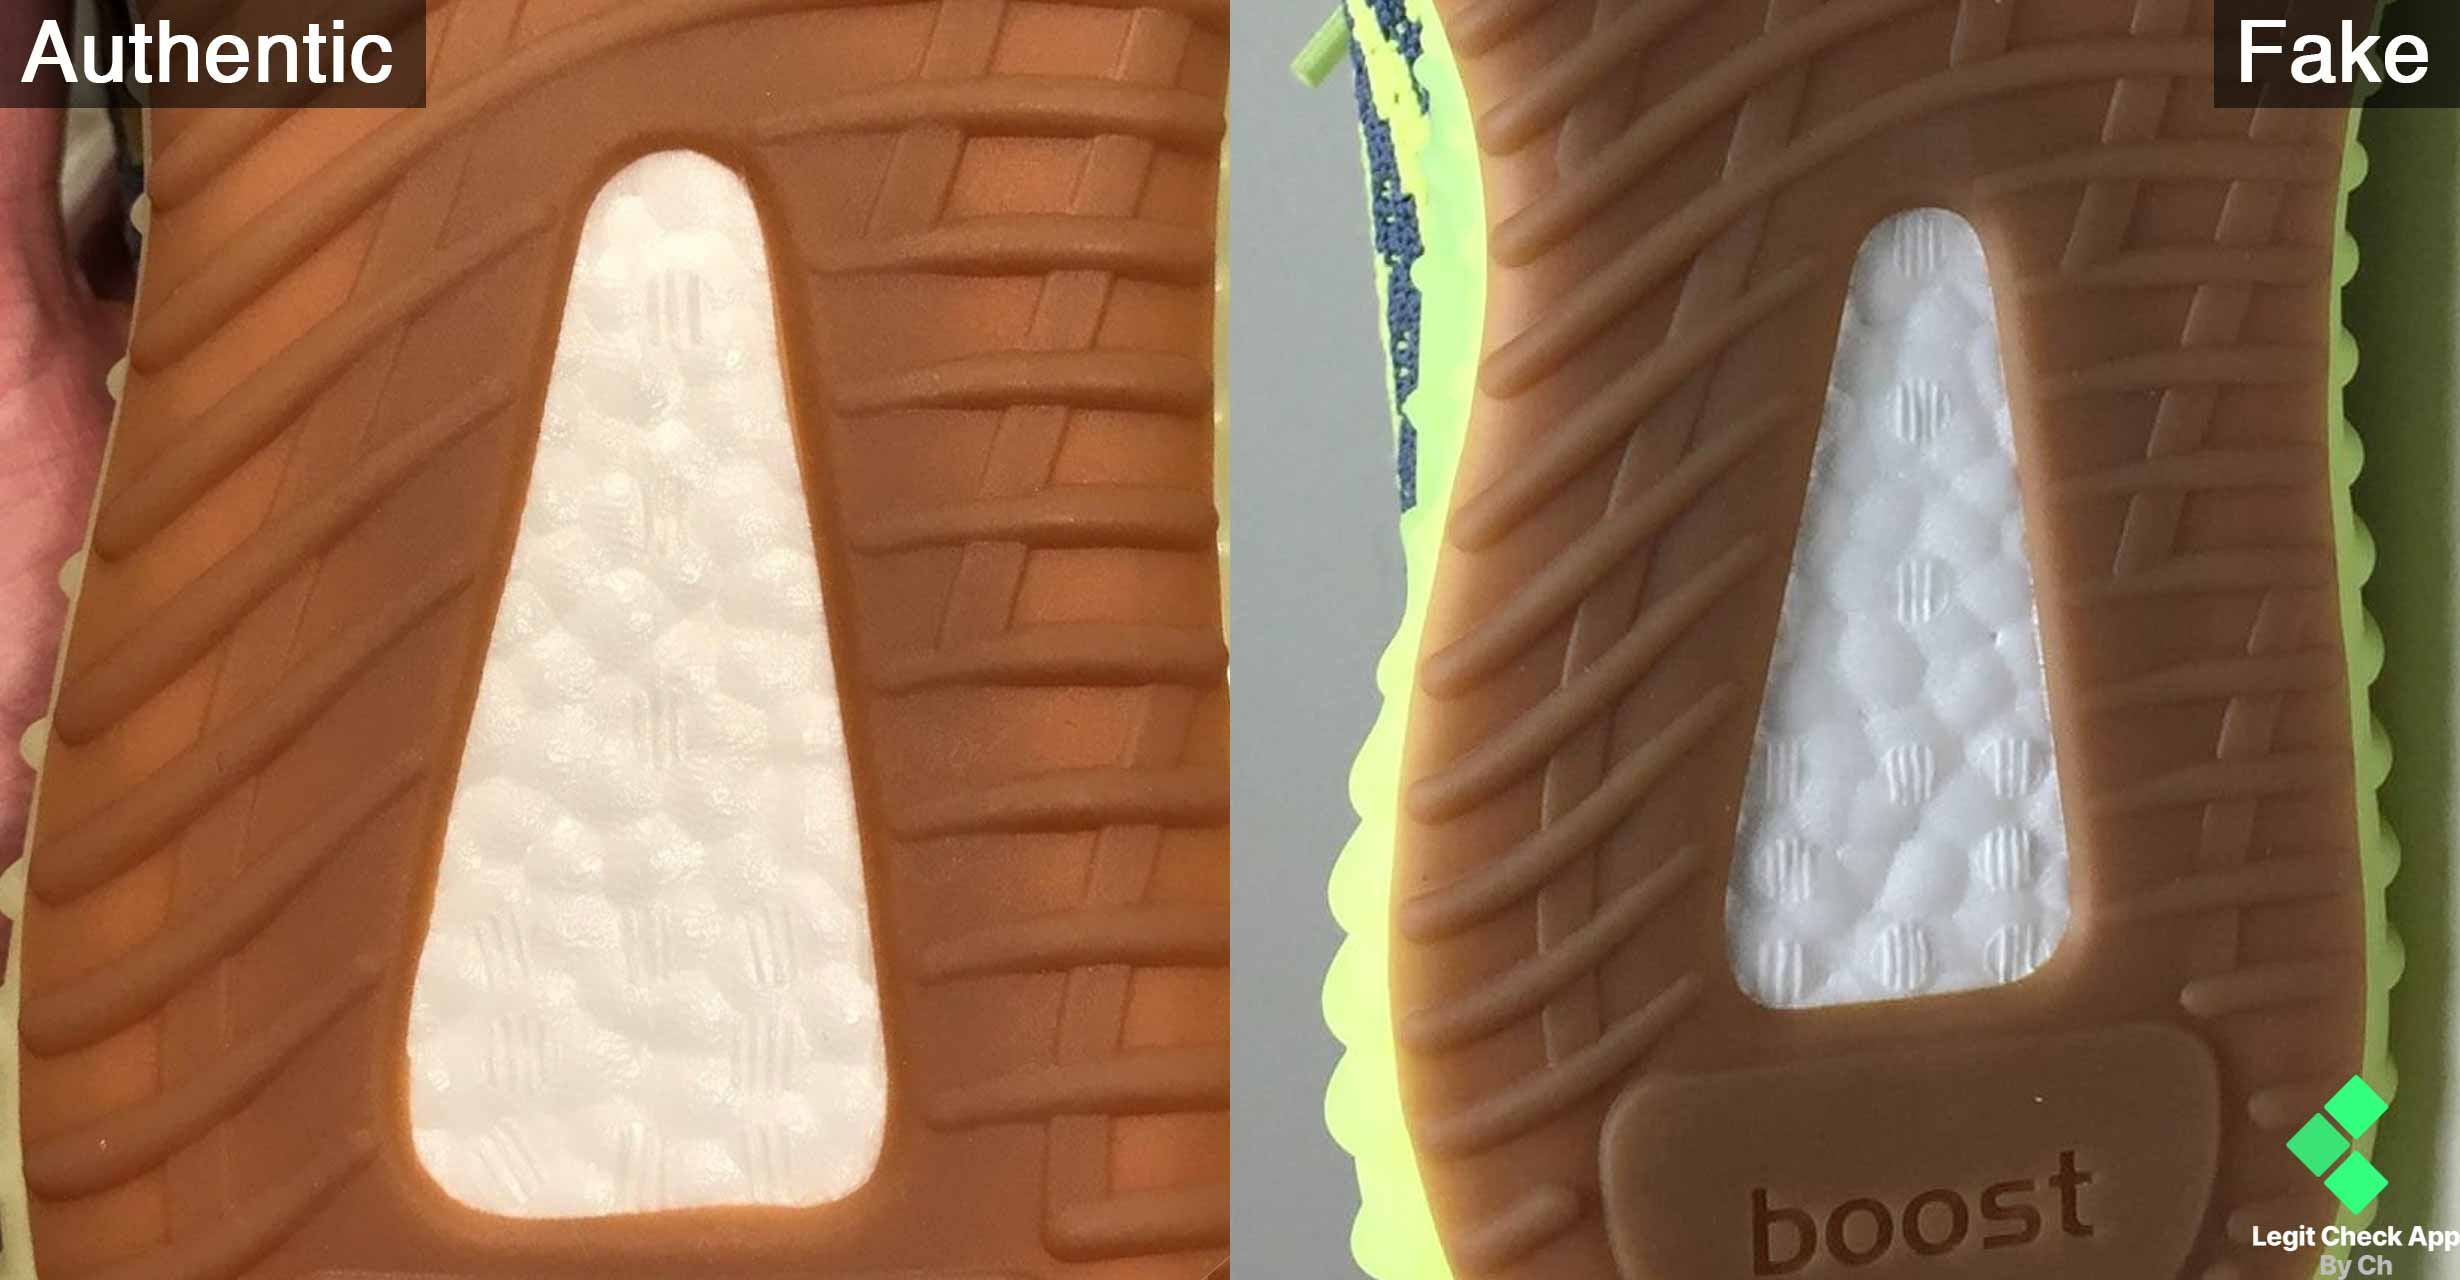 a511f13f805 Fake Vs Real Yeezy Boost 350 V2 Frozen Yellow Boost Sole - Legit Check